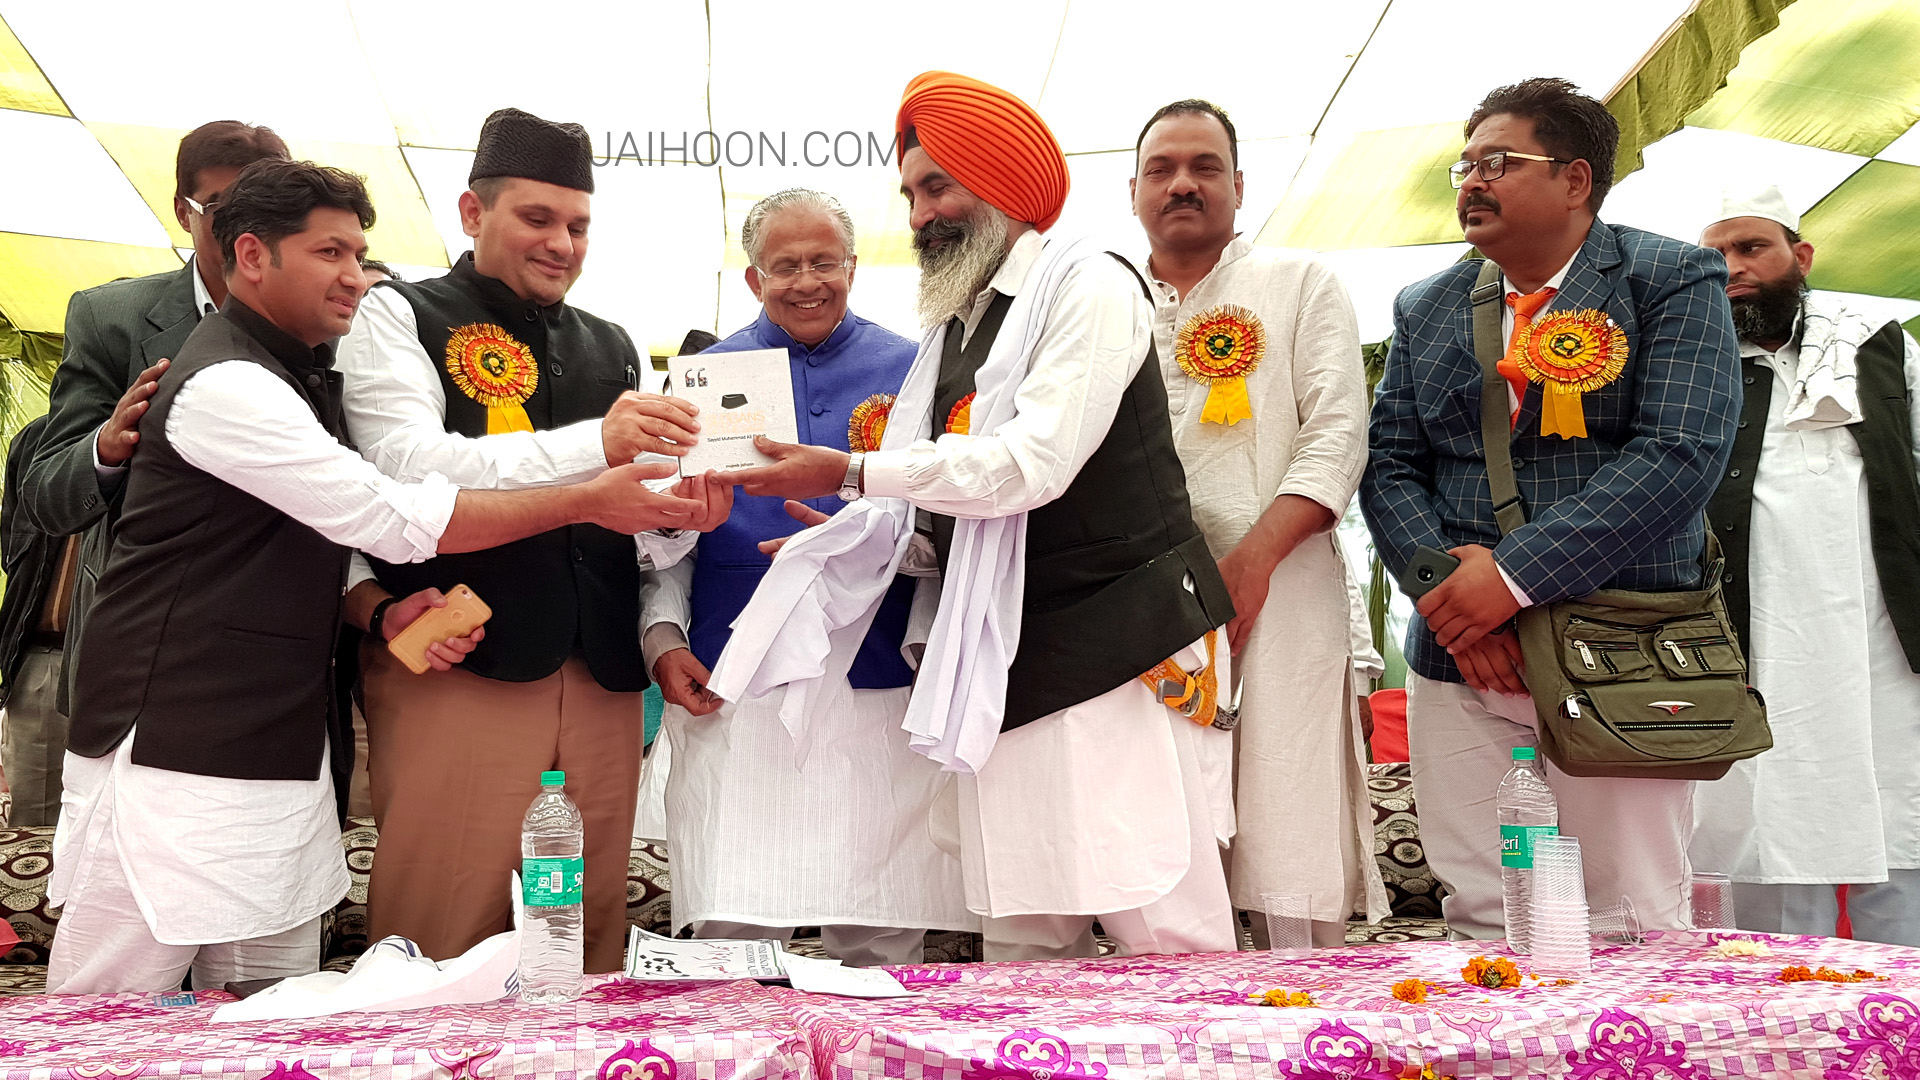 Slogans of the Sage Presented to Harish Singh, priest of local gurudwara in Mansa